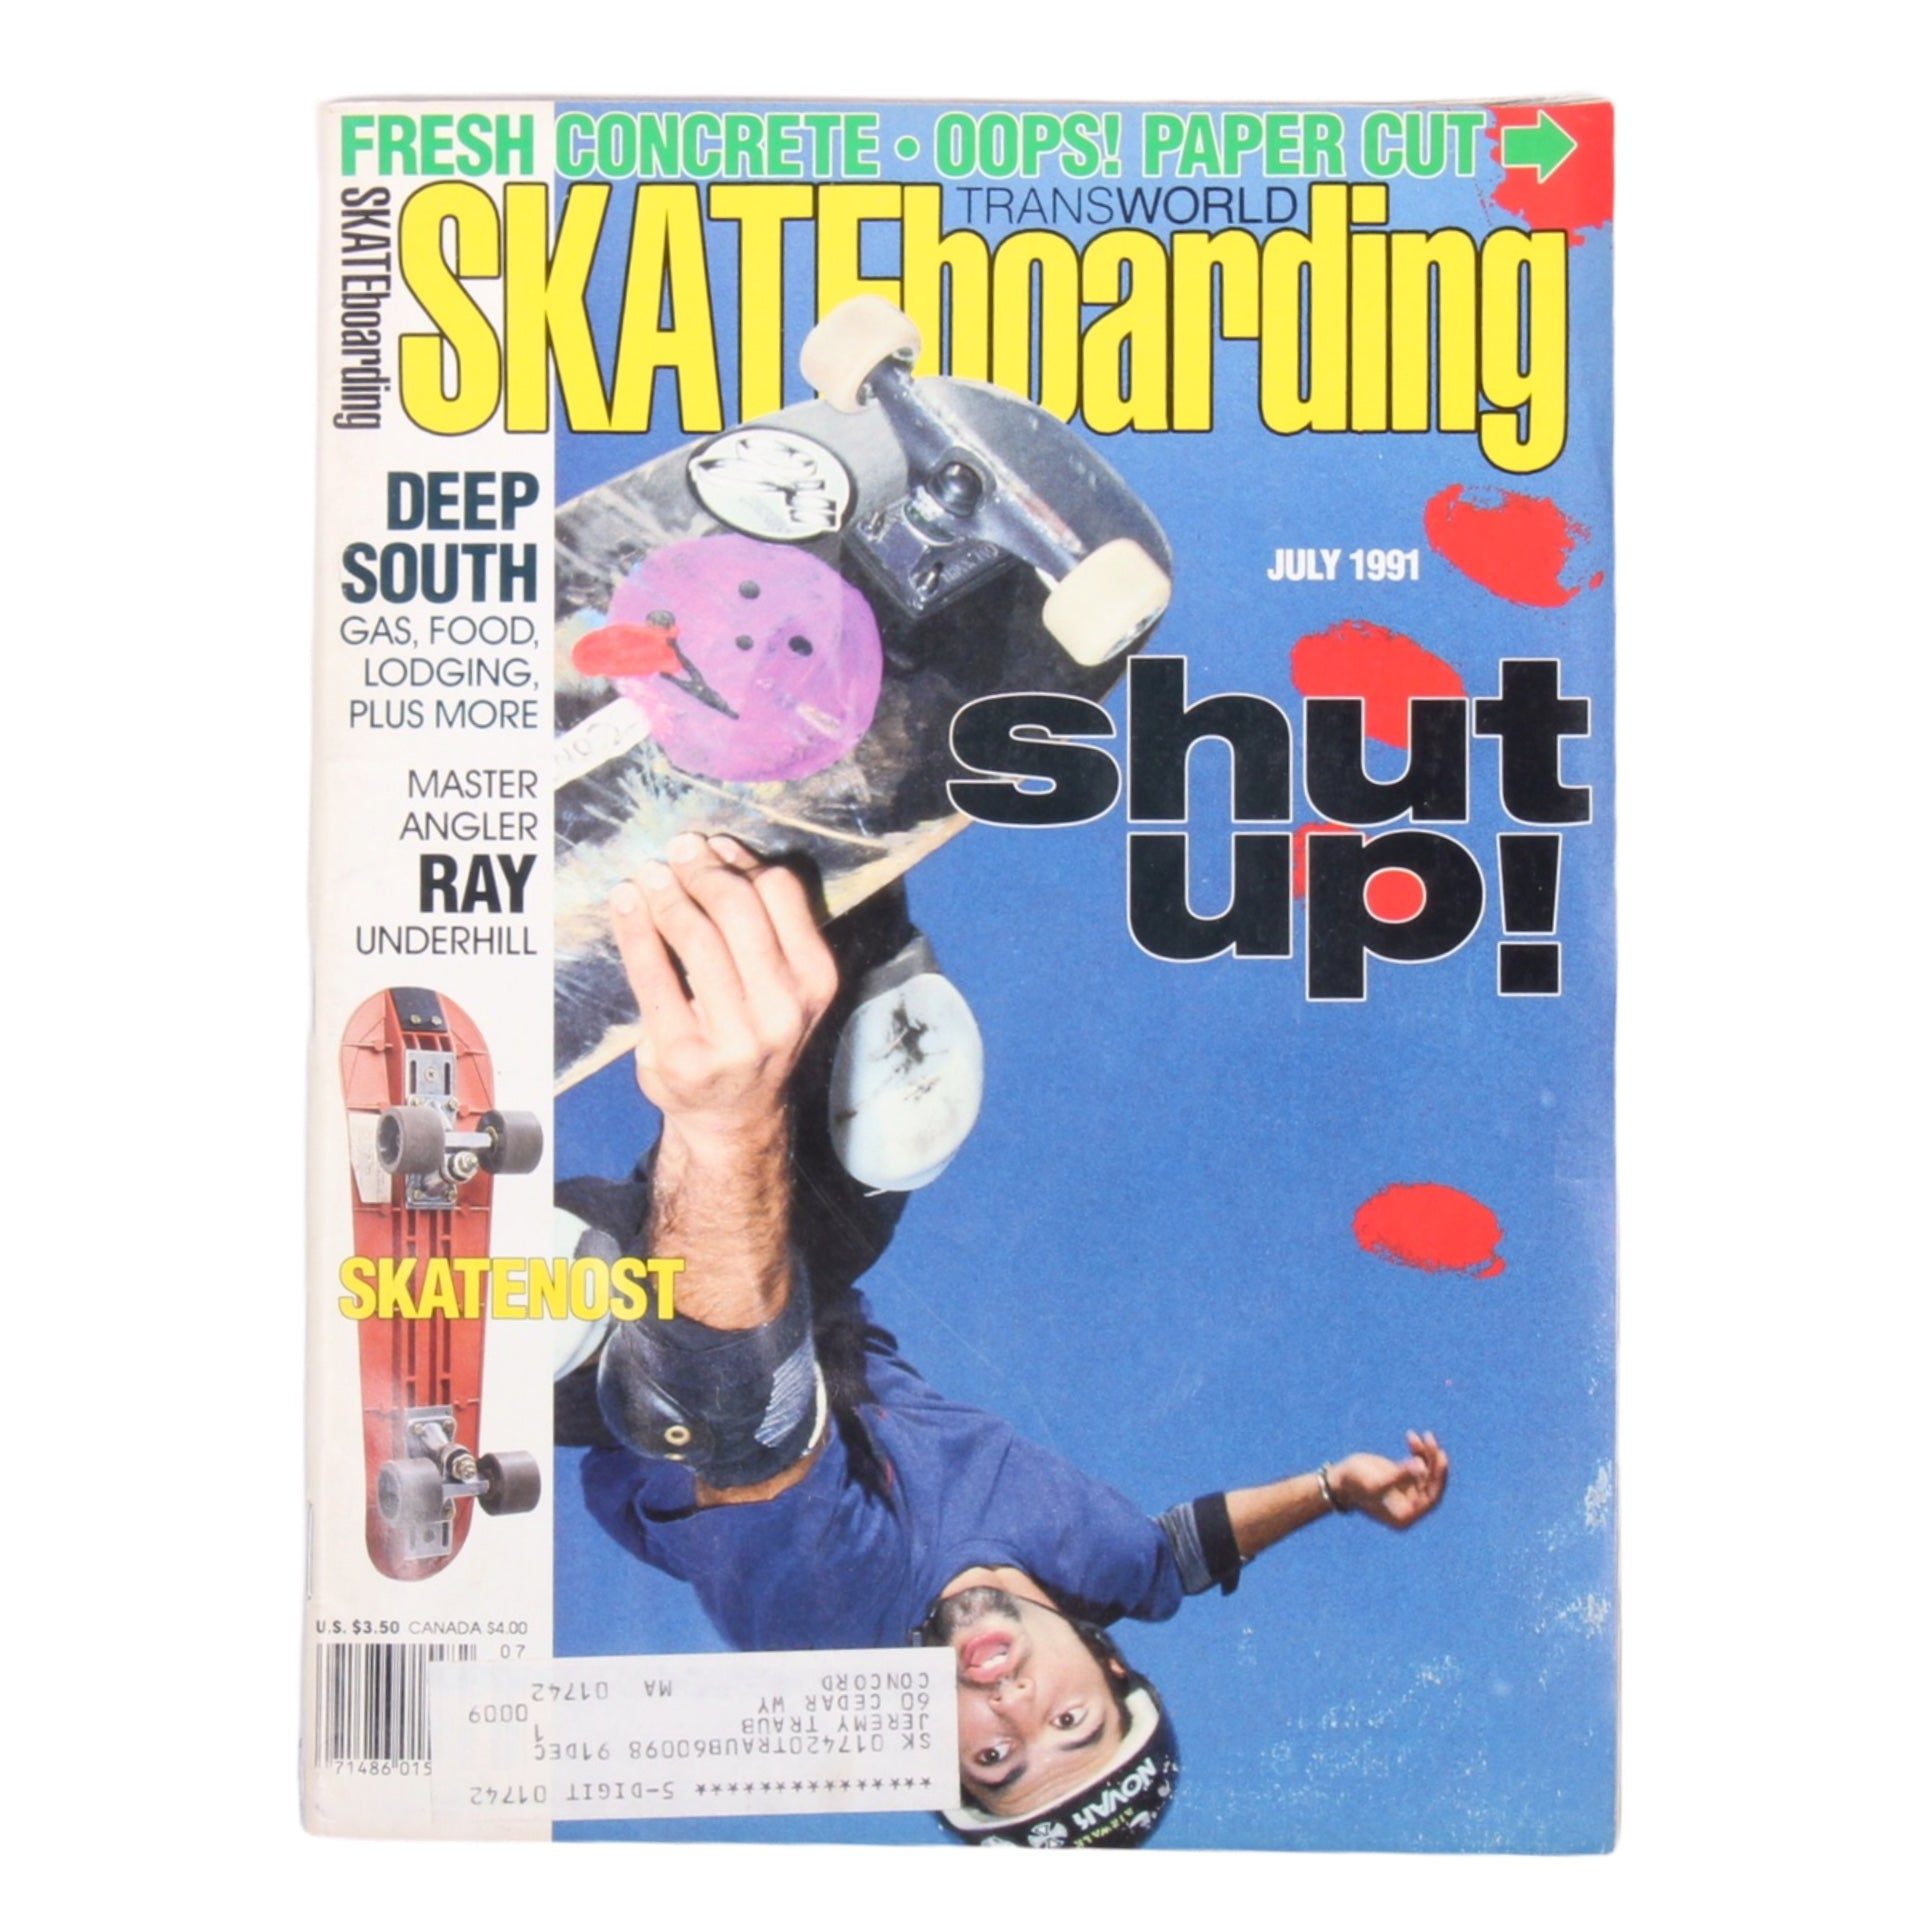 Overripe Transworld Skateboarding Magazine TWS July 1991